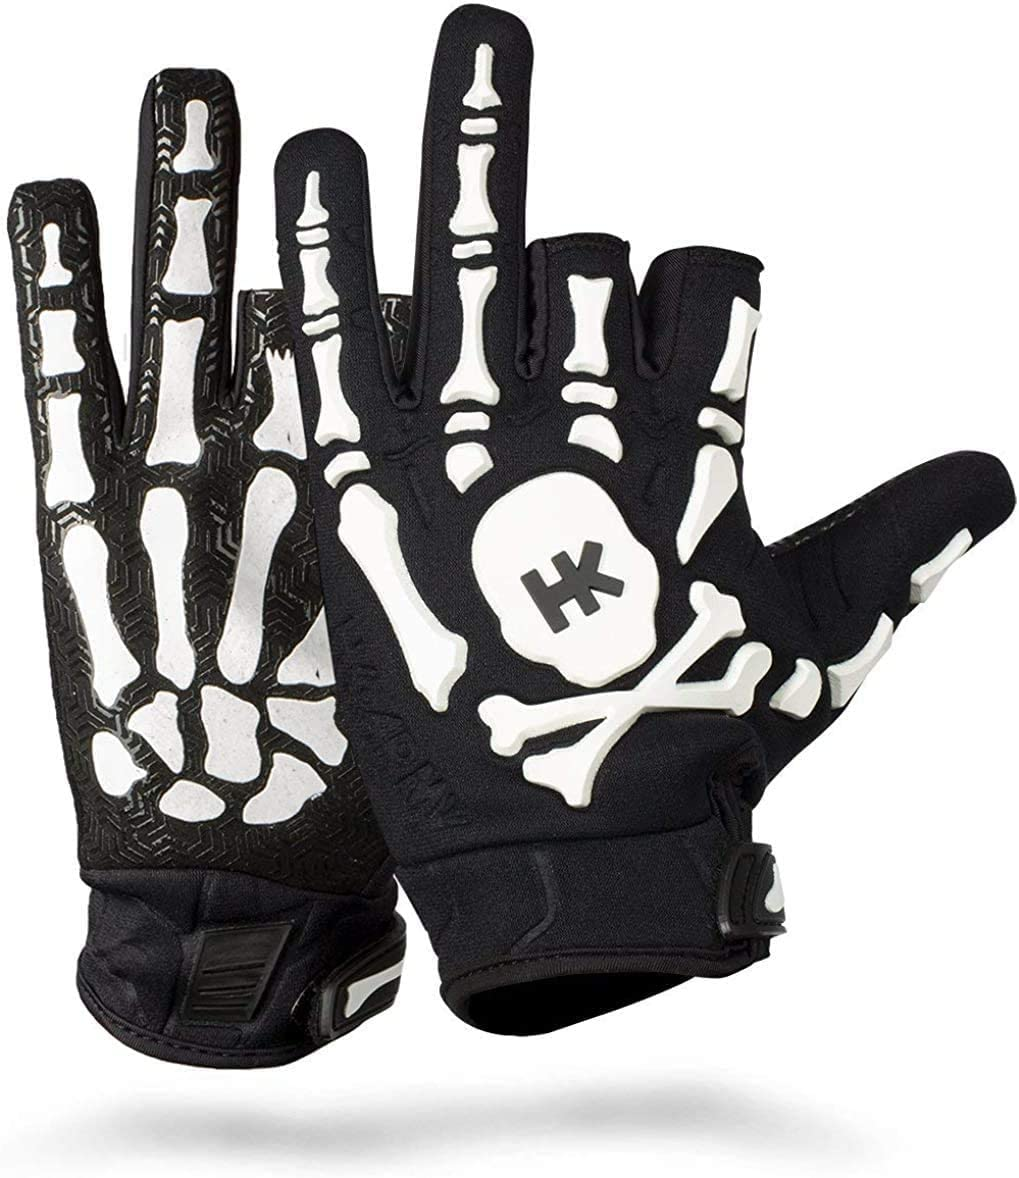 HK Army Bones Paintball Gloves : Sports & Outdoors